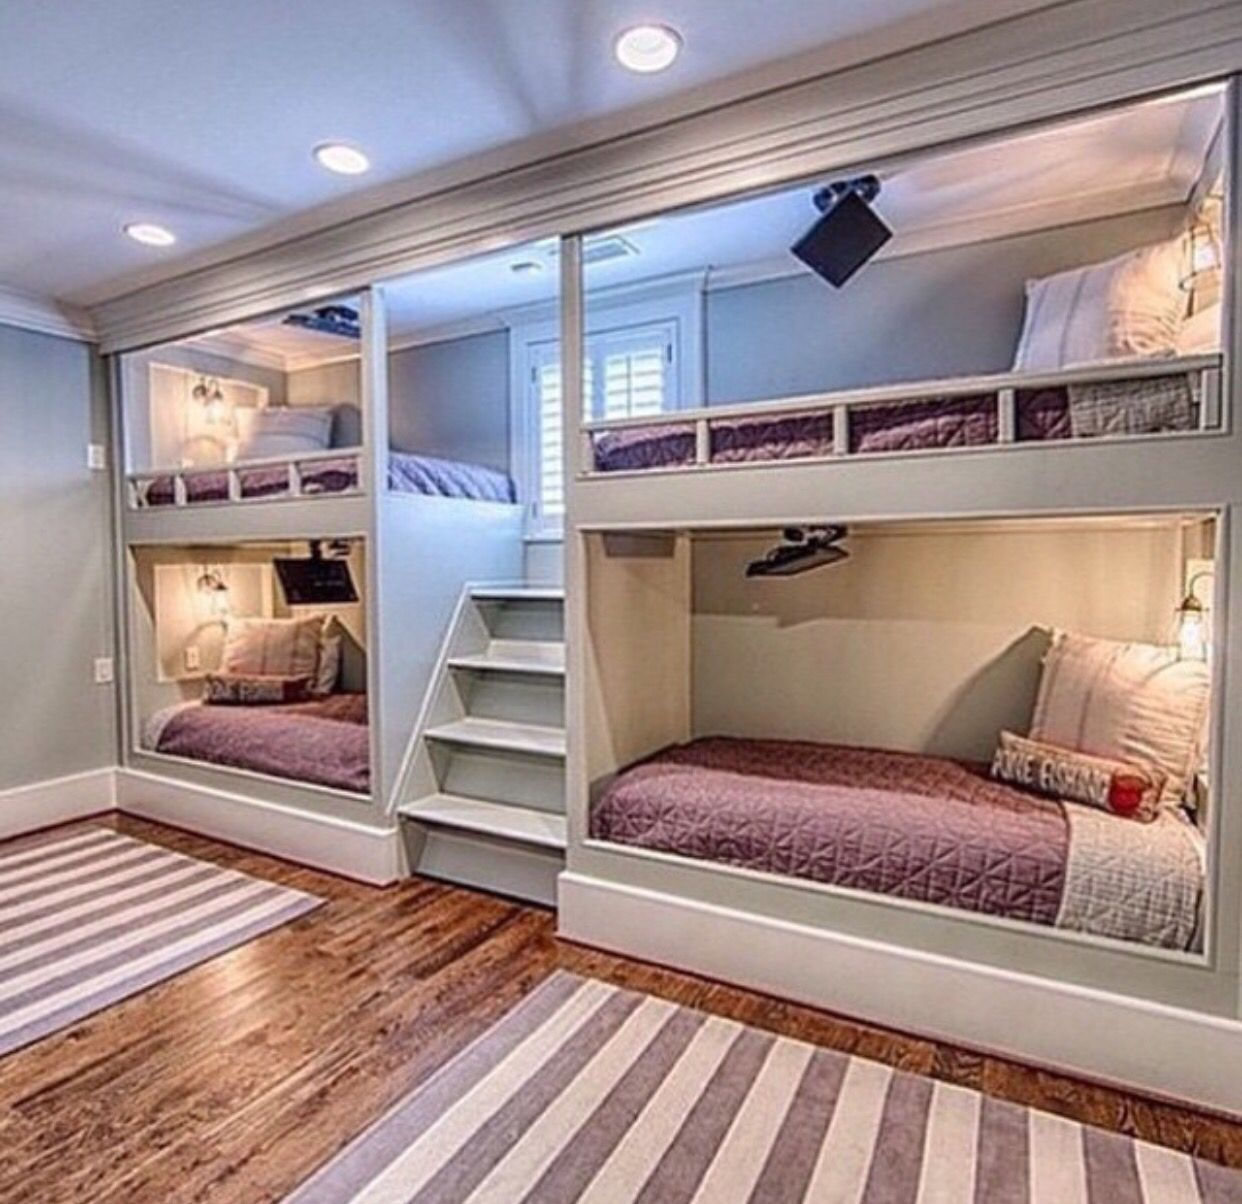 Luxurius Bedroom Ideas For Quadruplets 25 On Home Decoration For Interior Design Styles With Bedroom Ideas For Quadruplets Affordable Bedroom Bunk Beds Bed Bedroom ideas for quadruplets